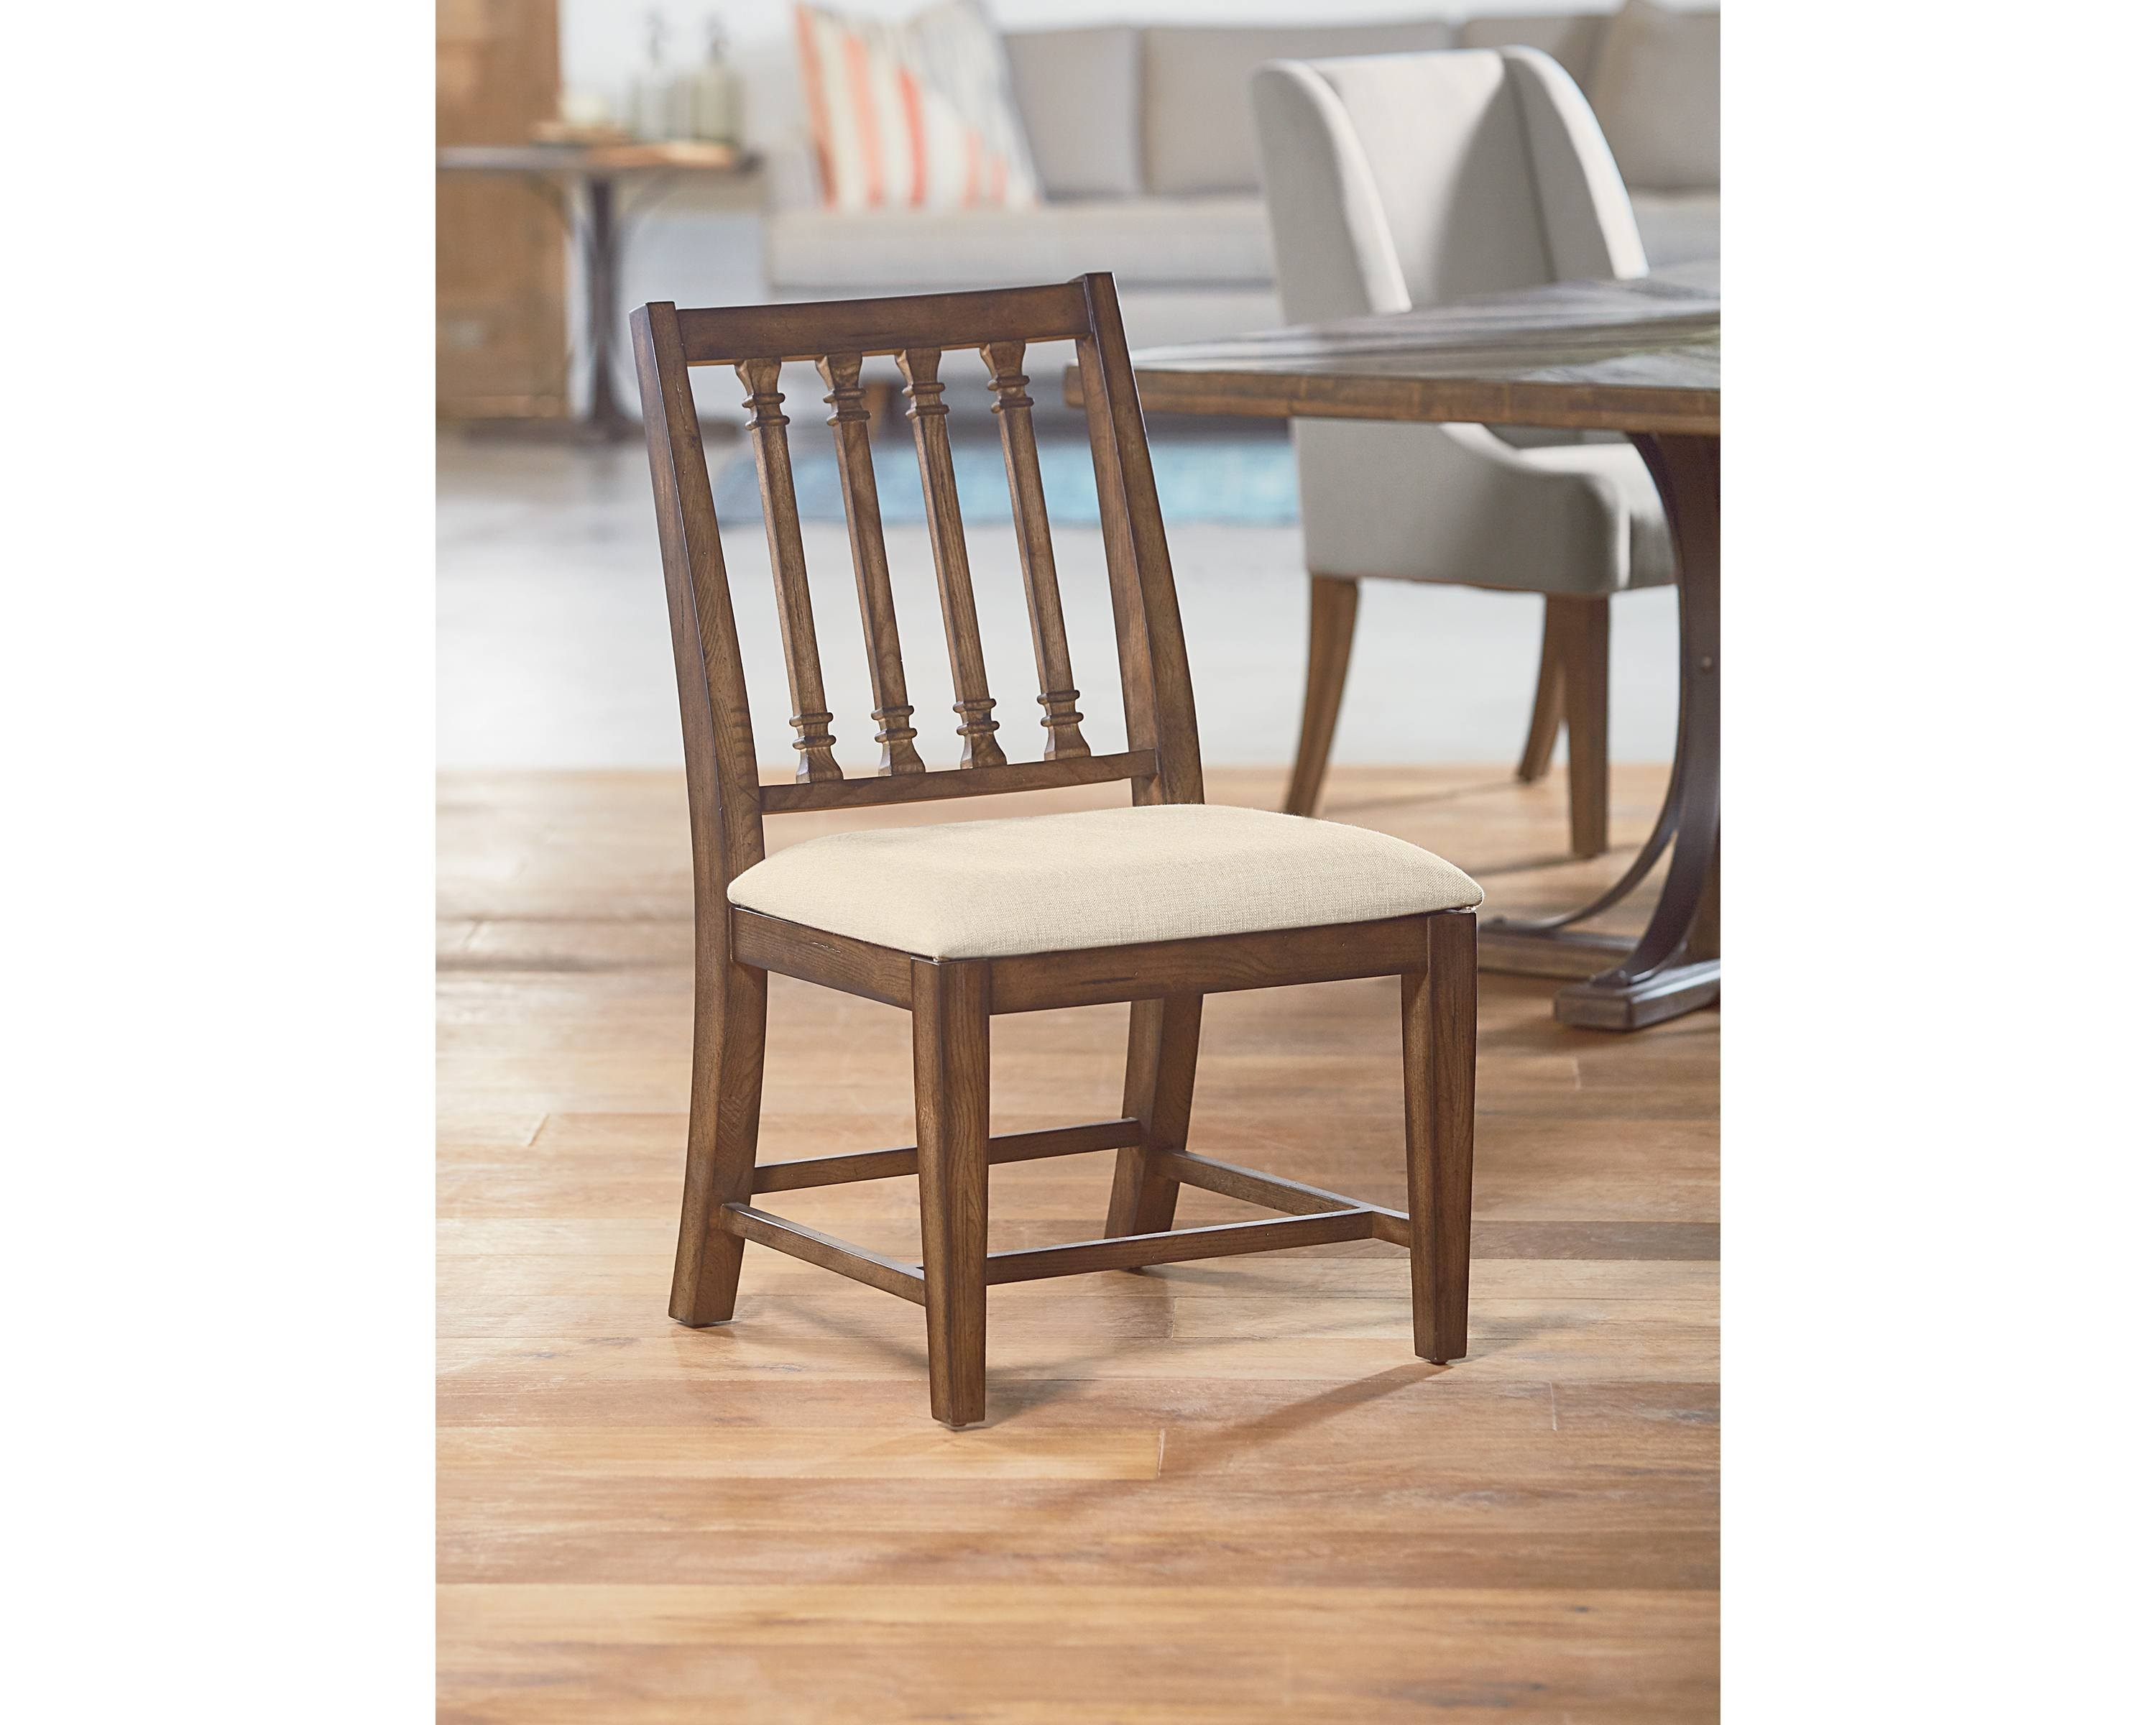 Inspiration about Most Current Magnolia Home Revival Side Chairs Throughout Revival Side Chair – Magnolia Home (#11 of 20)